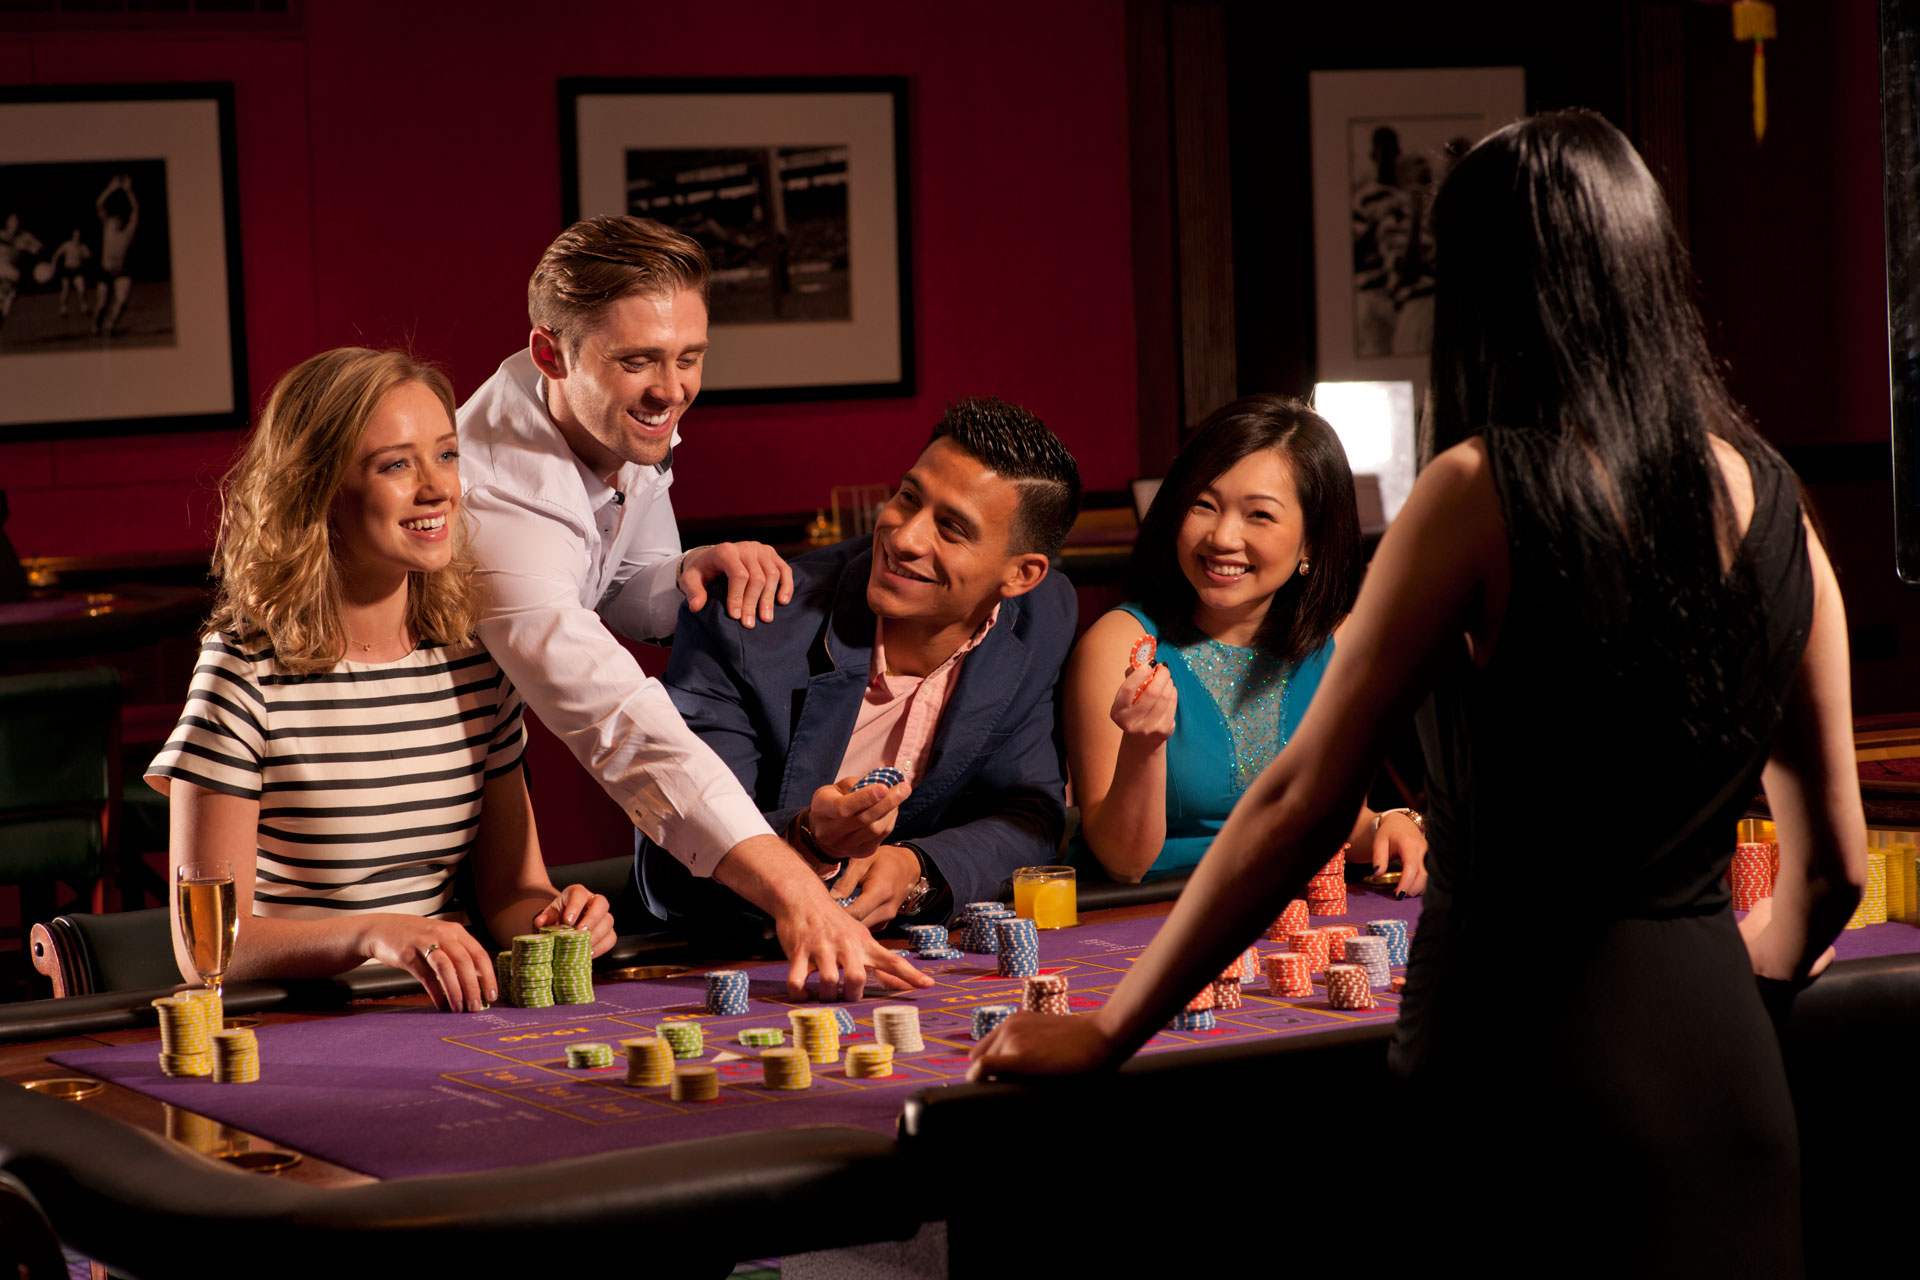 Outstanding Casino Site to Have Fun Online